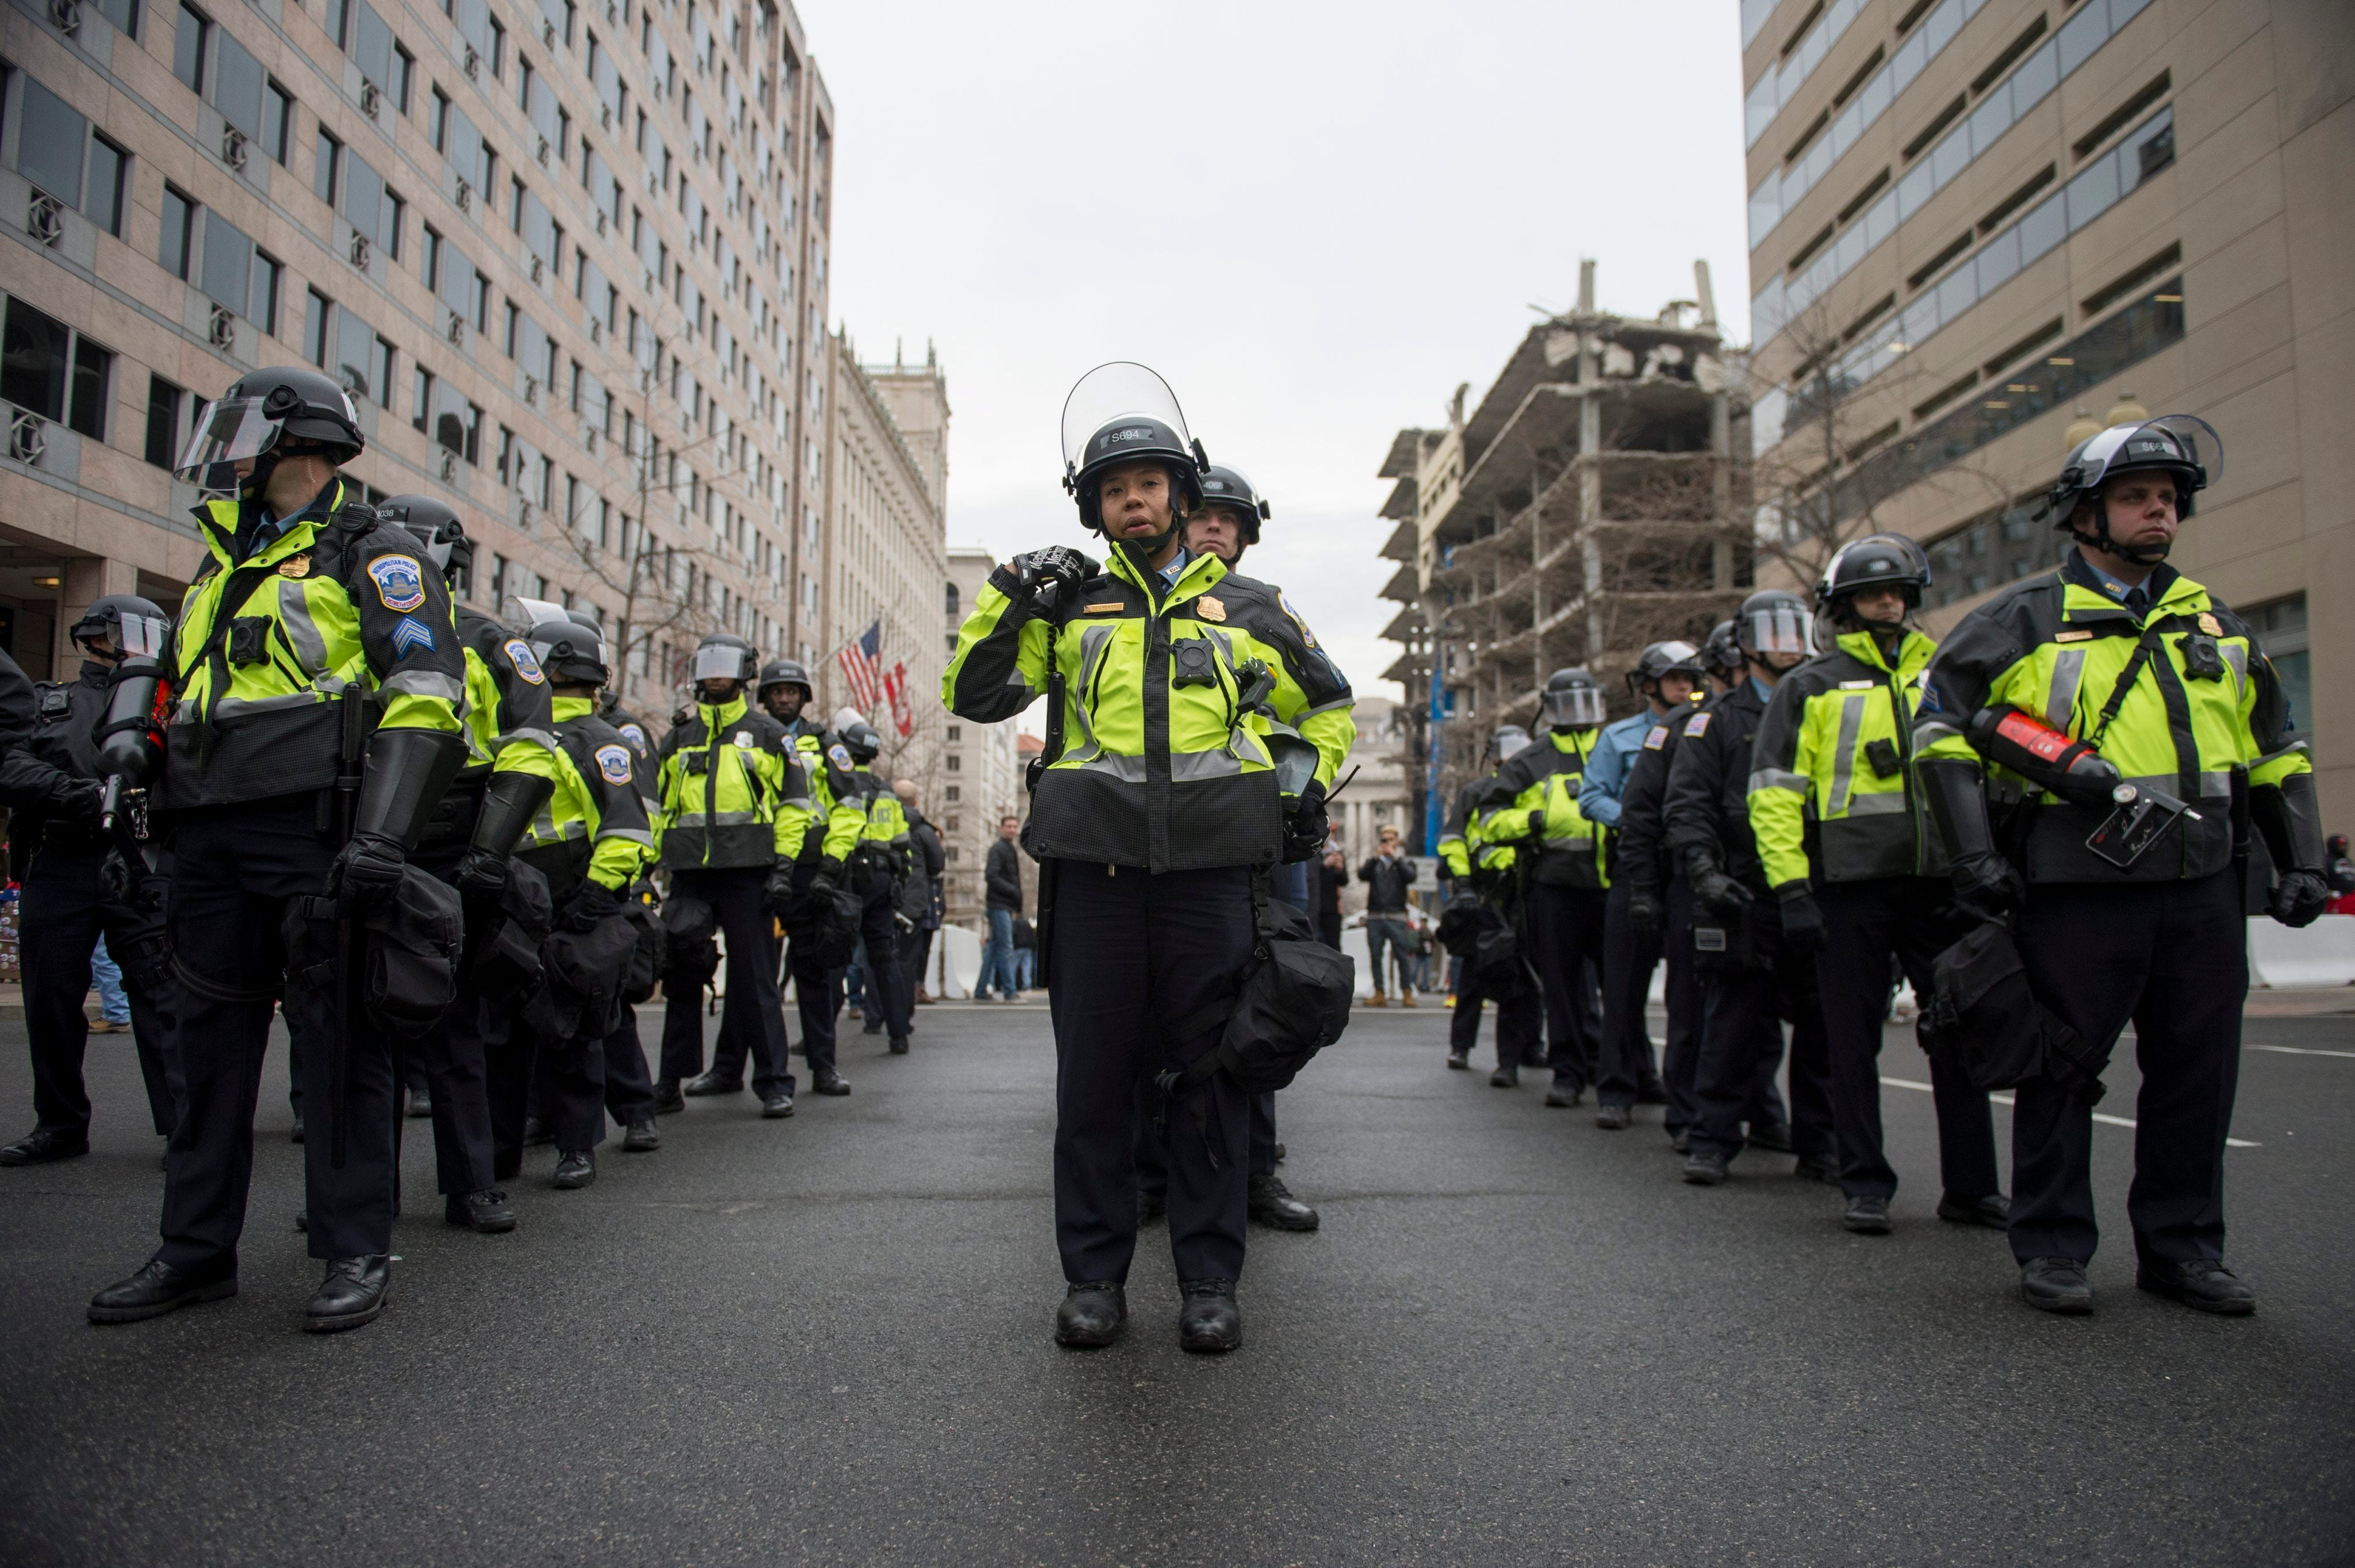 217 arrests, 6 officer injuries during inauguration protests